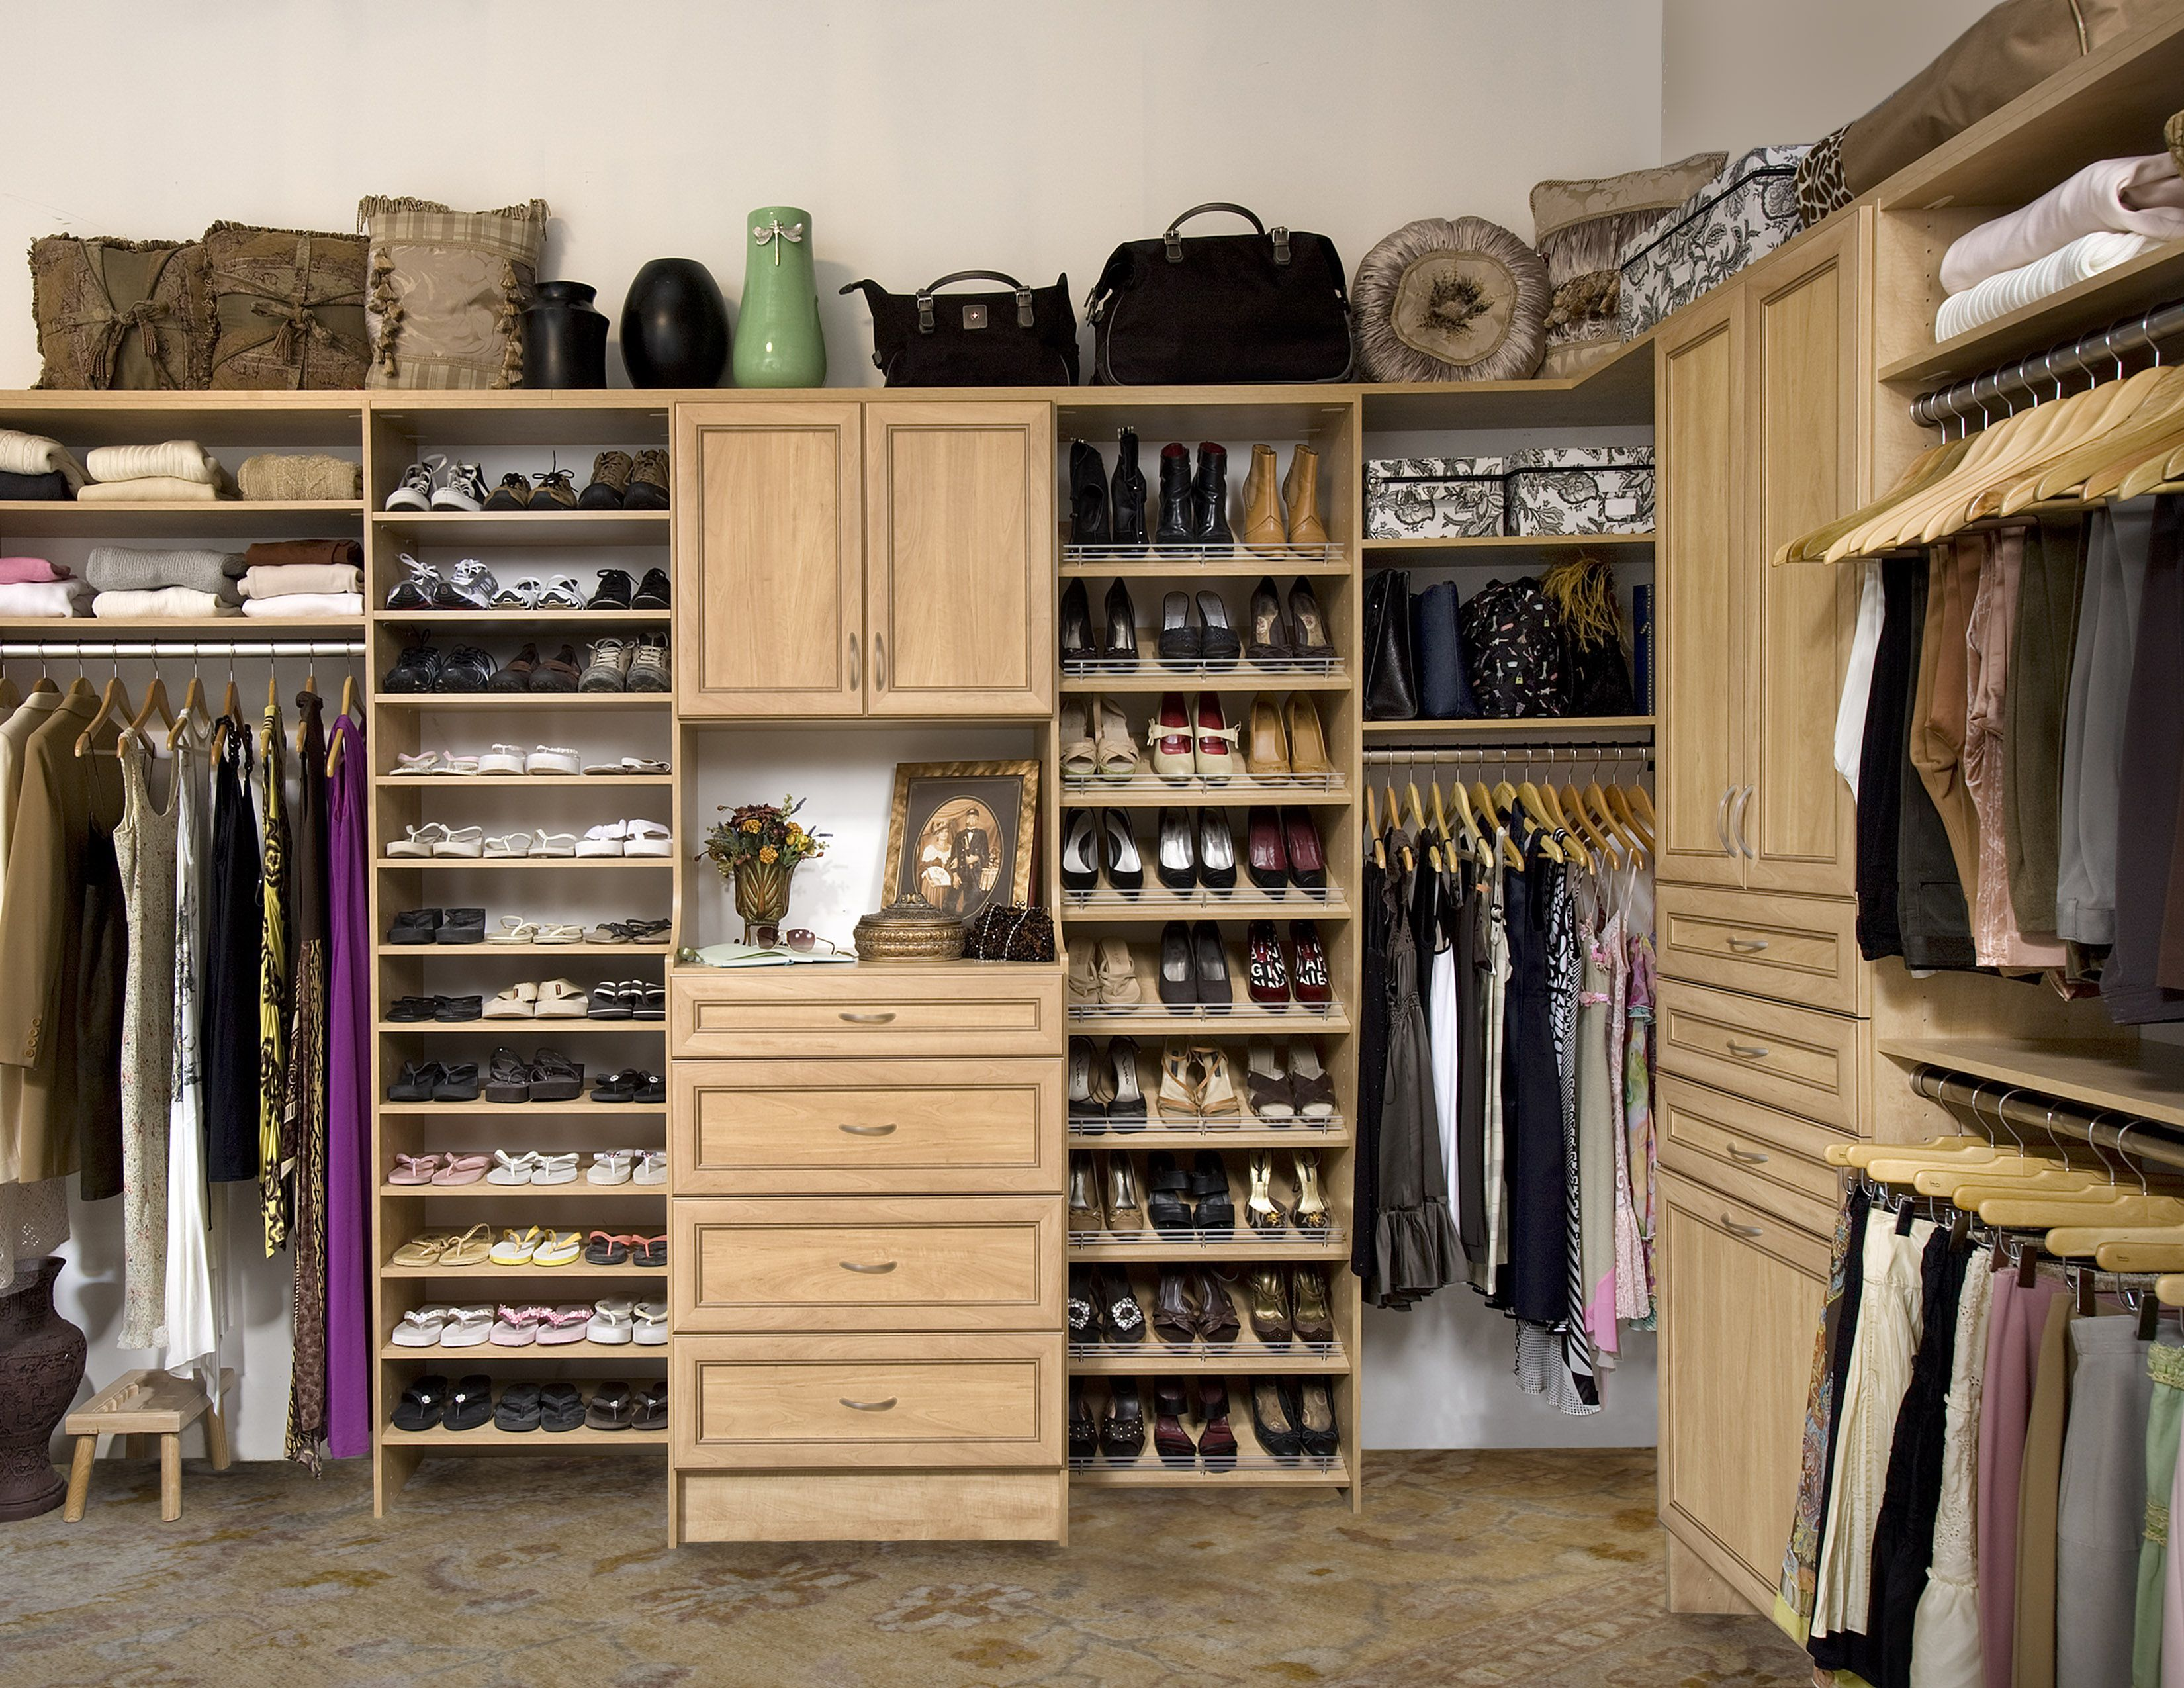 Closet Organizer Service see a galley of our products and services in action. see how